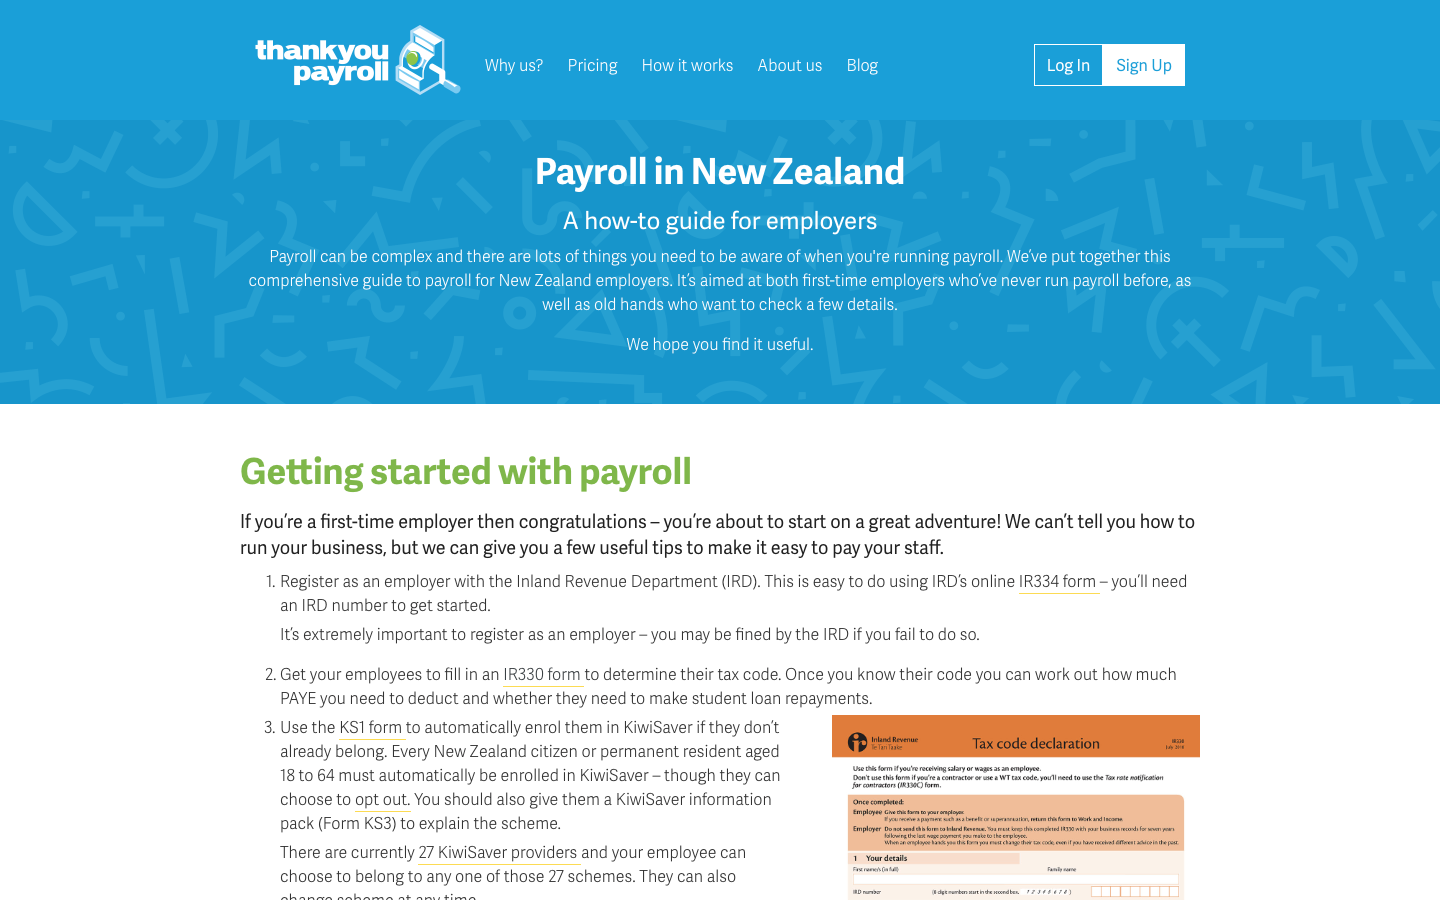 Guide to Payroll in New Zealand